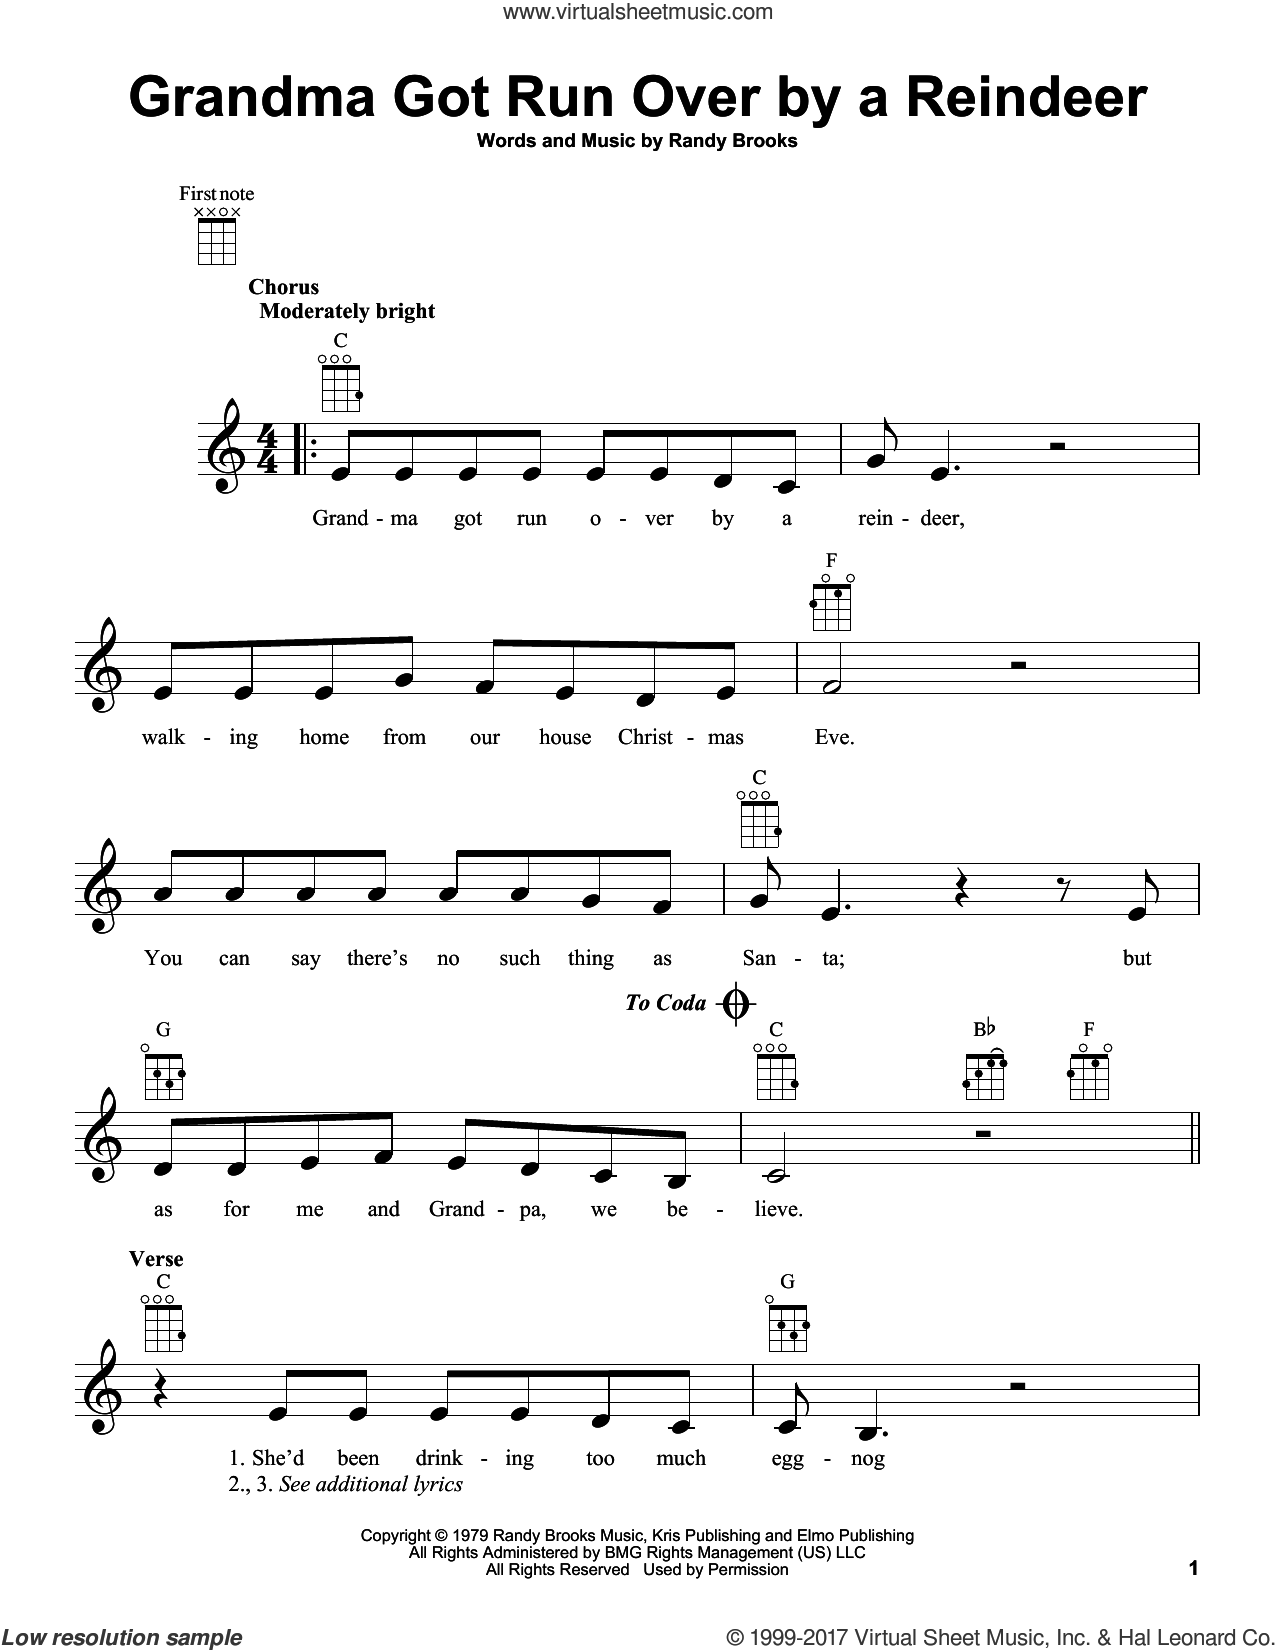 Grandma Got Run Over By A Reindeer sheet music for ukulele by Randy Brooks, intermediate skill level